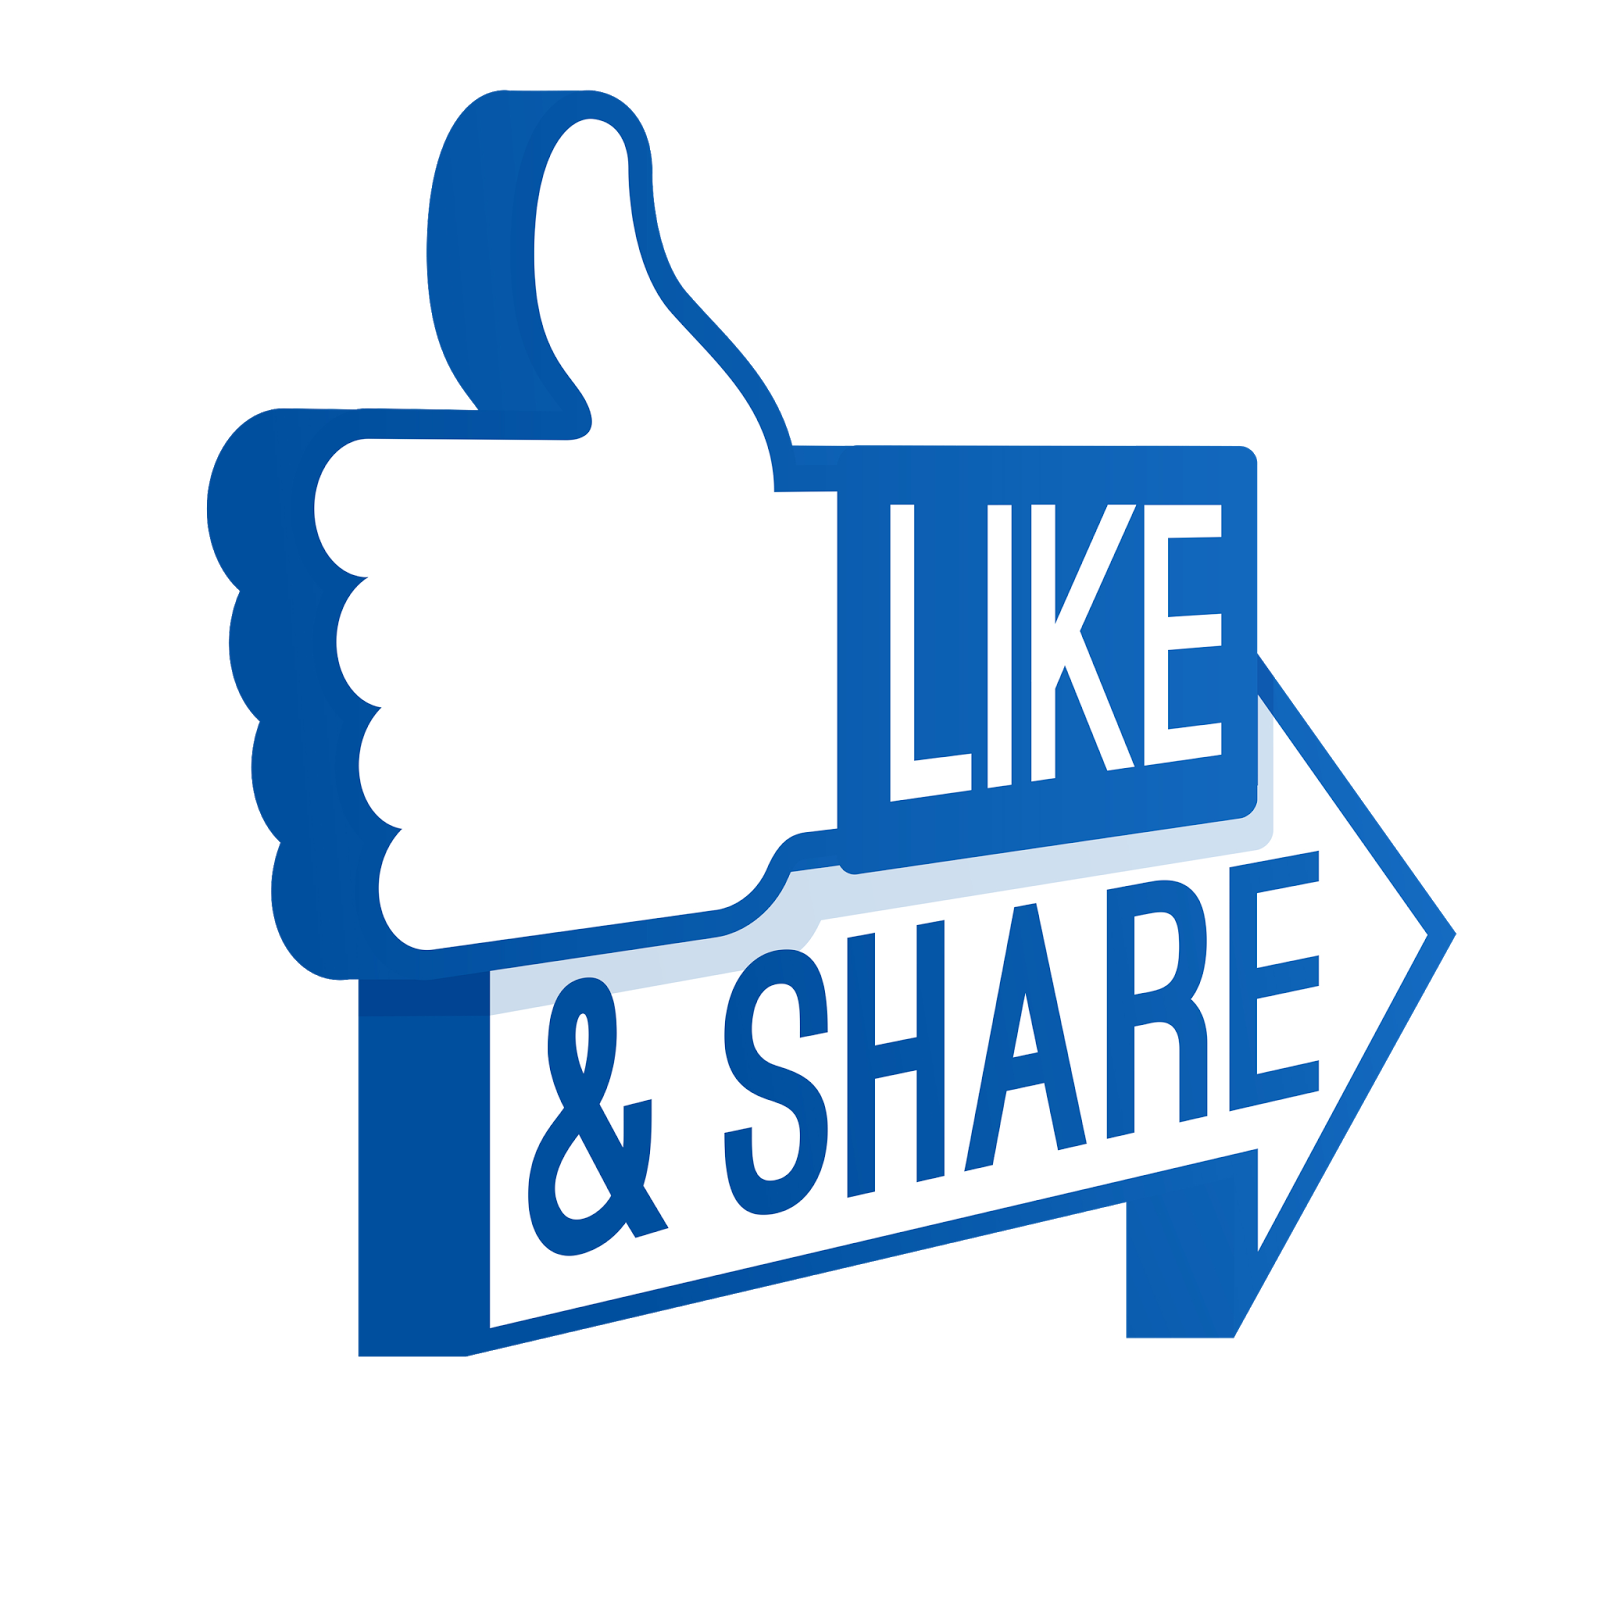 facebook like share png transparent logo #5786